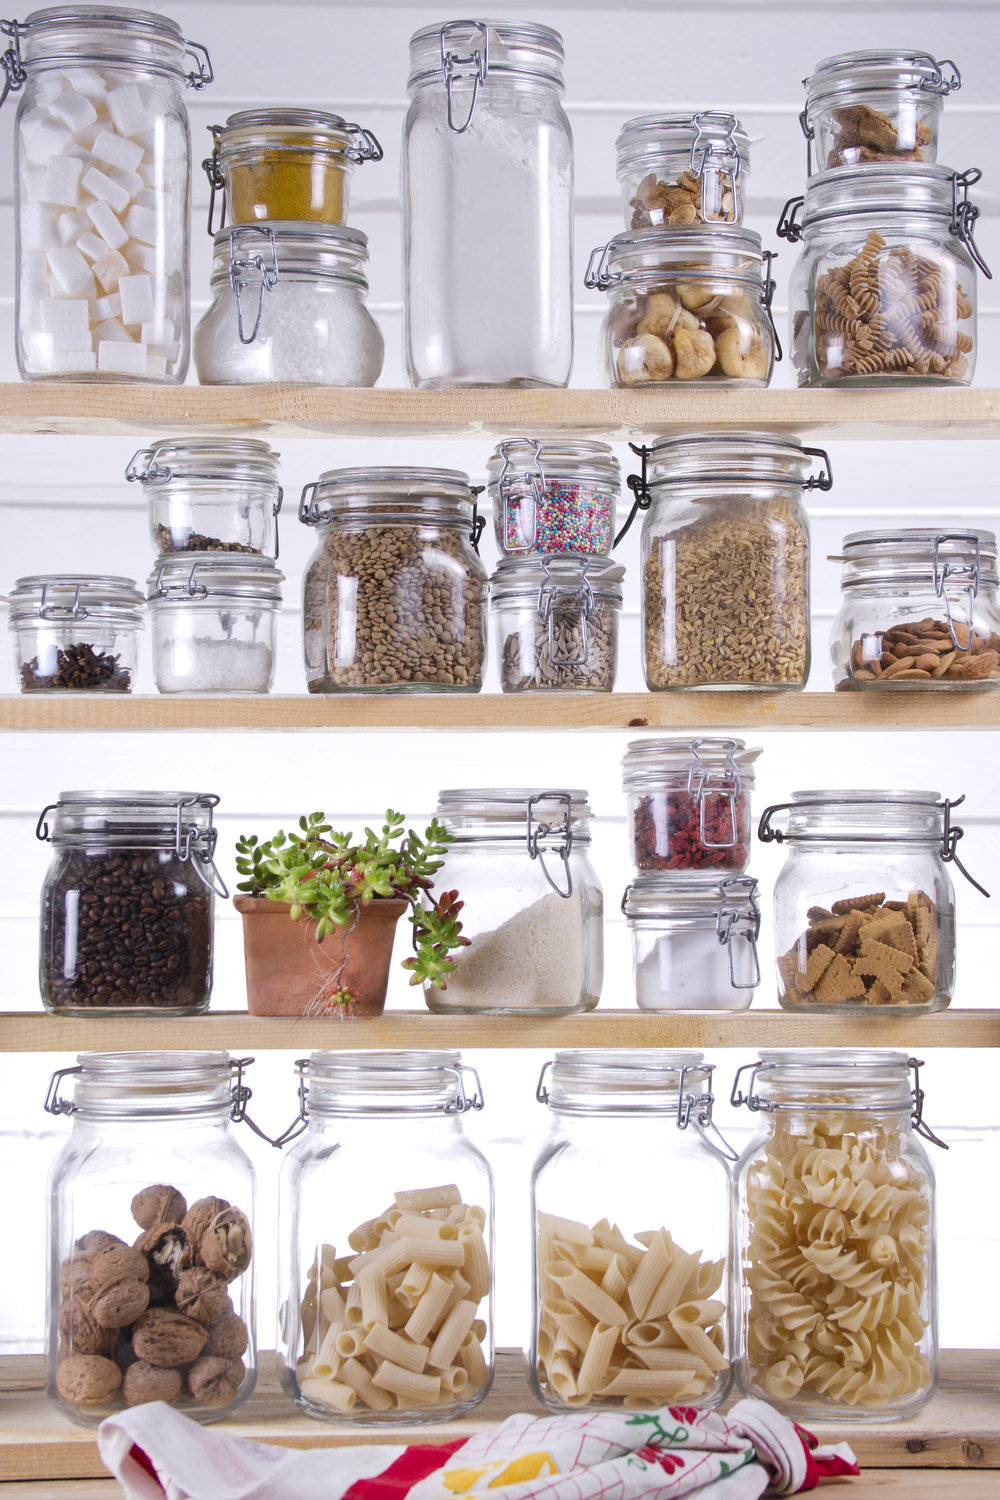 Let me guide you on what you should keep & discard from your pantry.